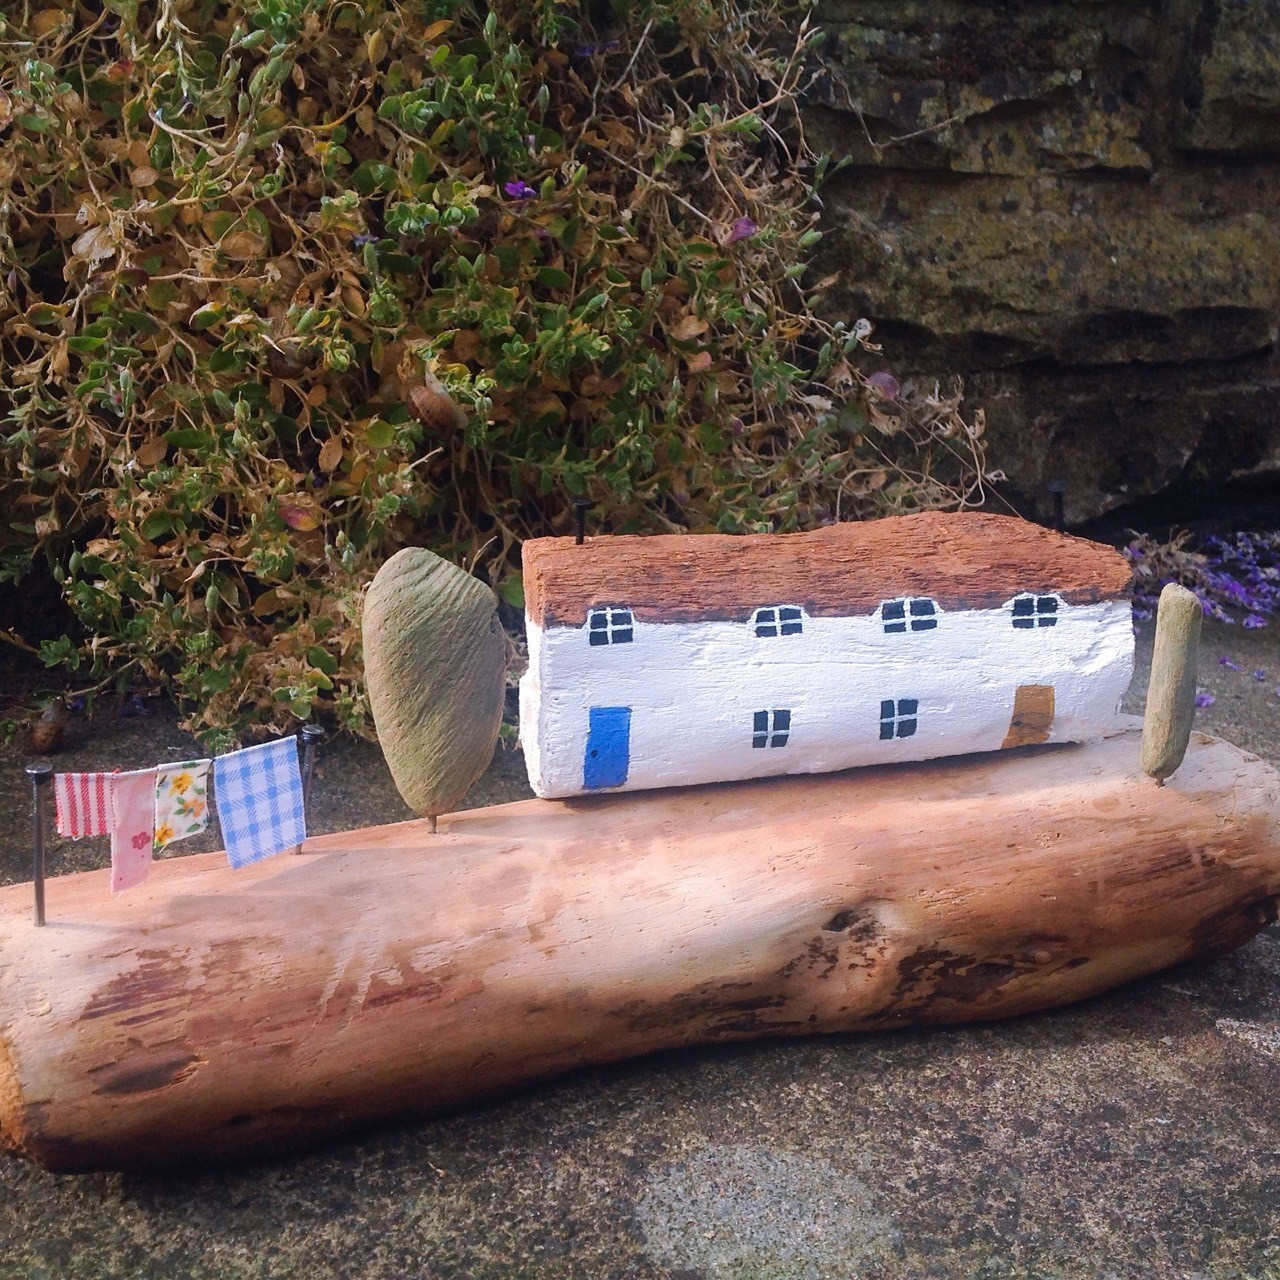 I don't know who lives here, but I DO like their bed linen ;-) #driftwood